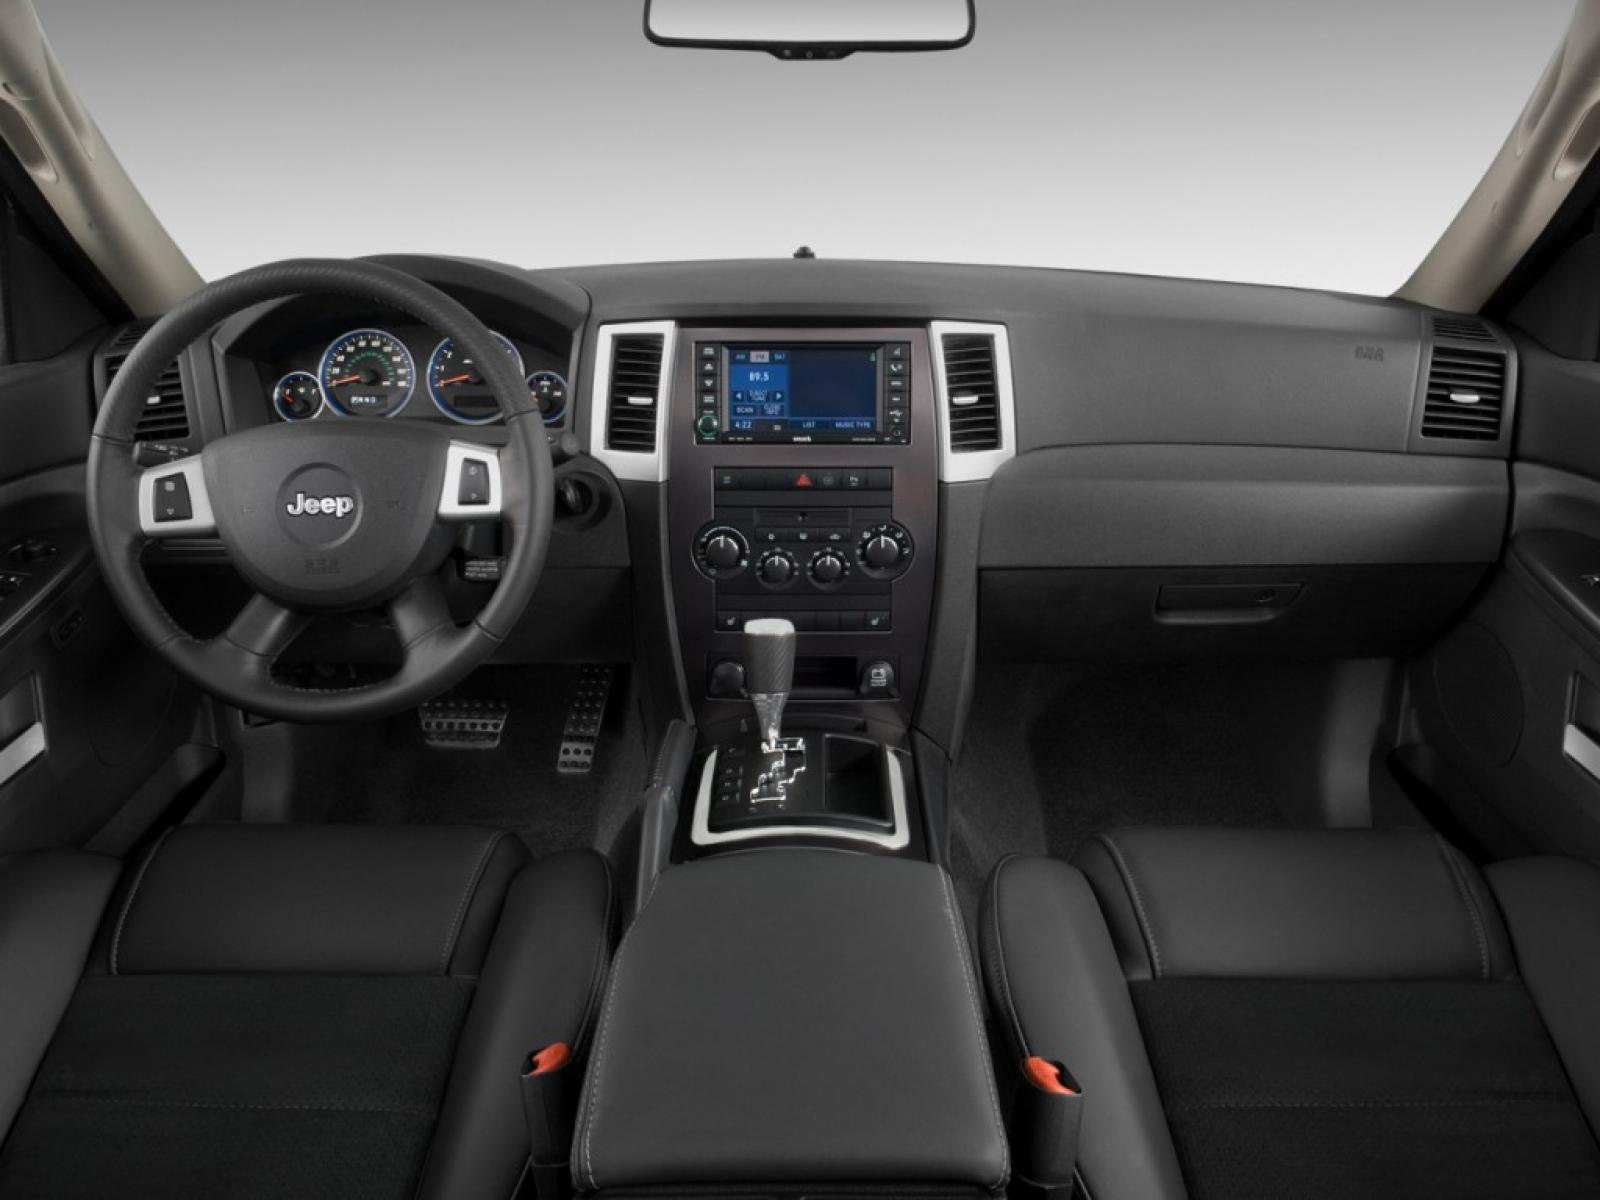 2009 Jeep Grand Cherokee Information And Photos